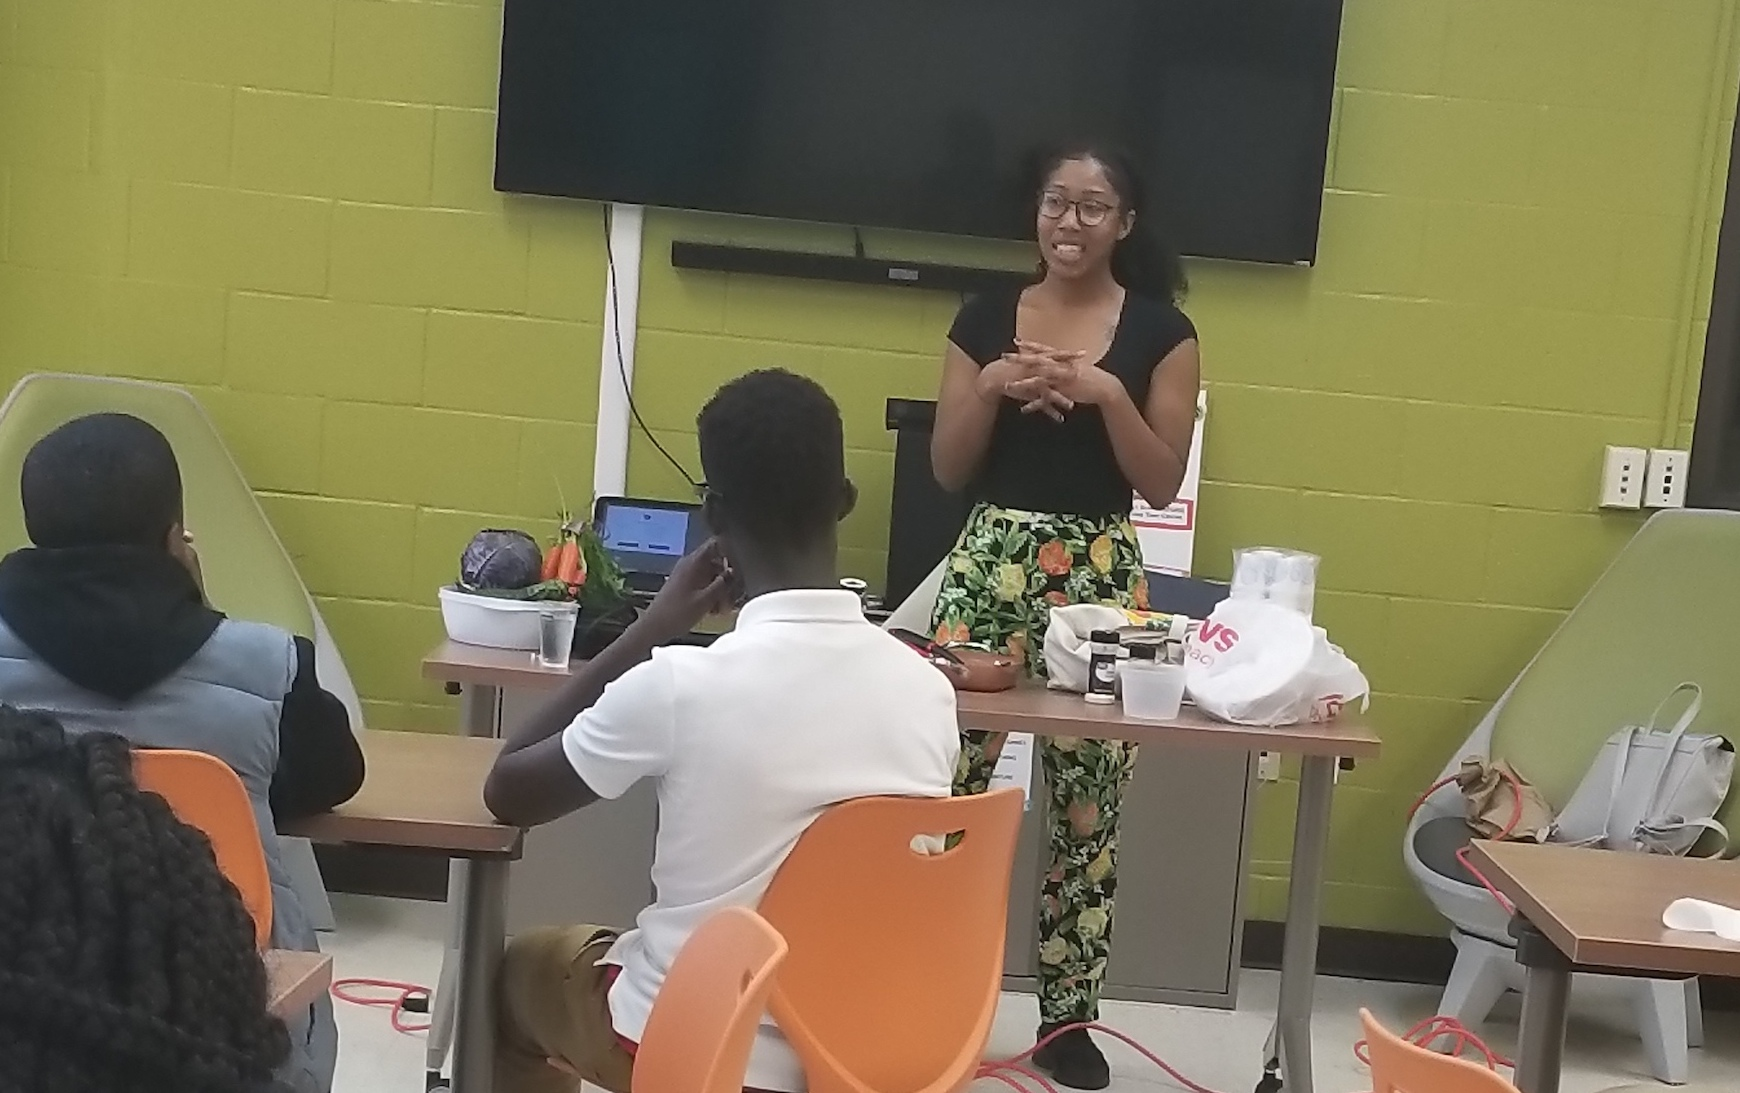 Speaker, Ms. Chaney, talks to kids about urban agriculture.